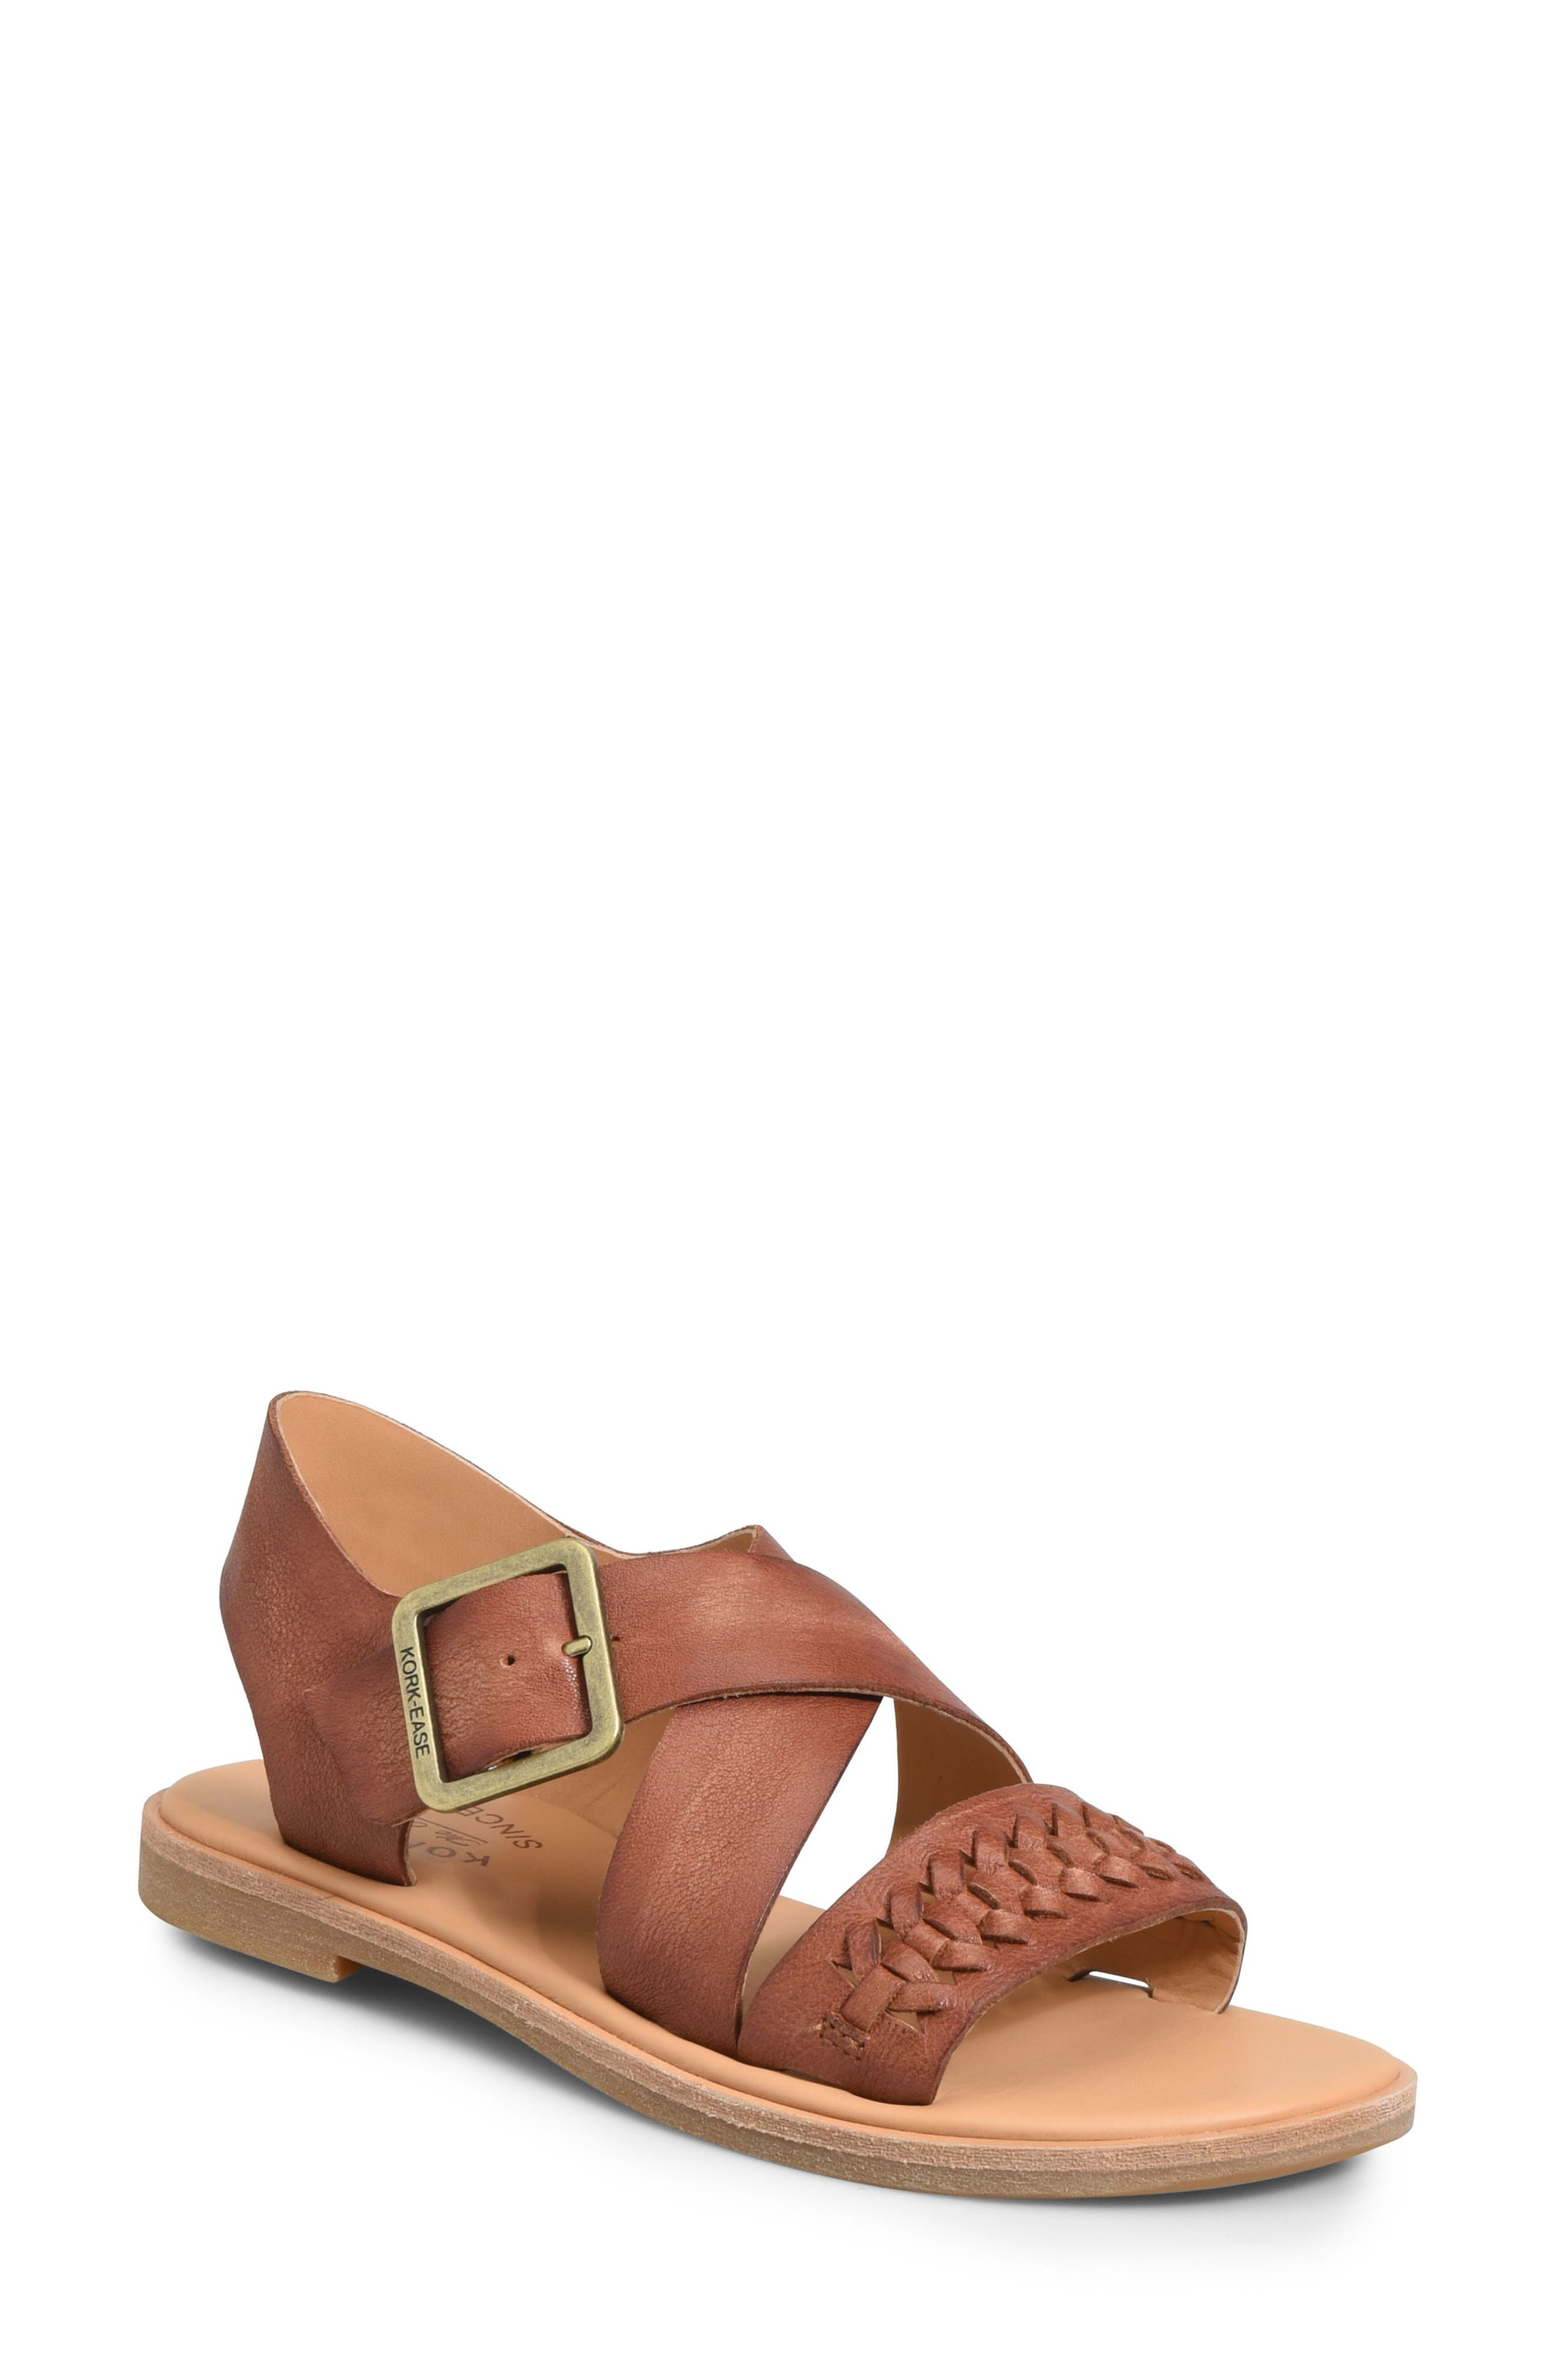 Main Image - Kork-Ease® Nara Braid Sandal (Women)